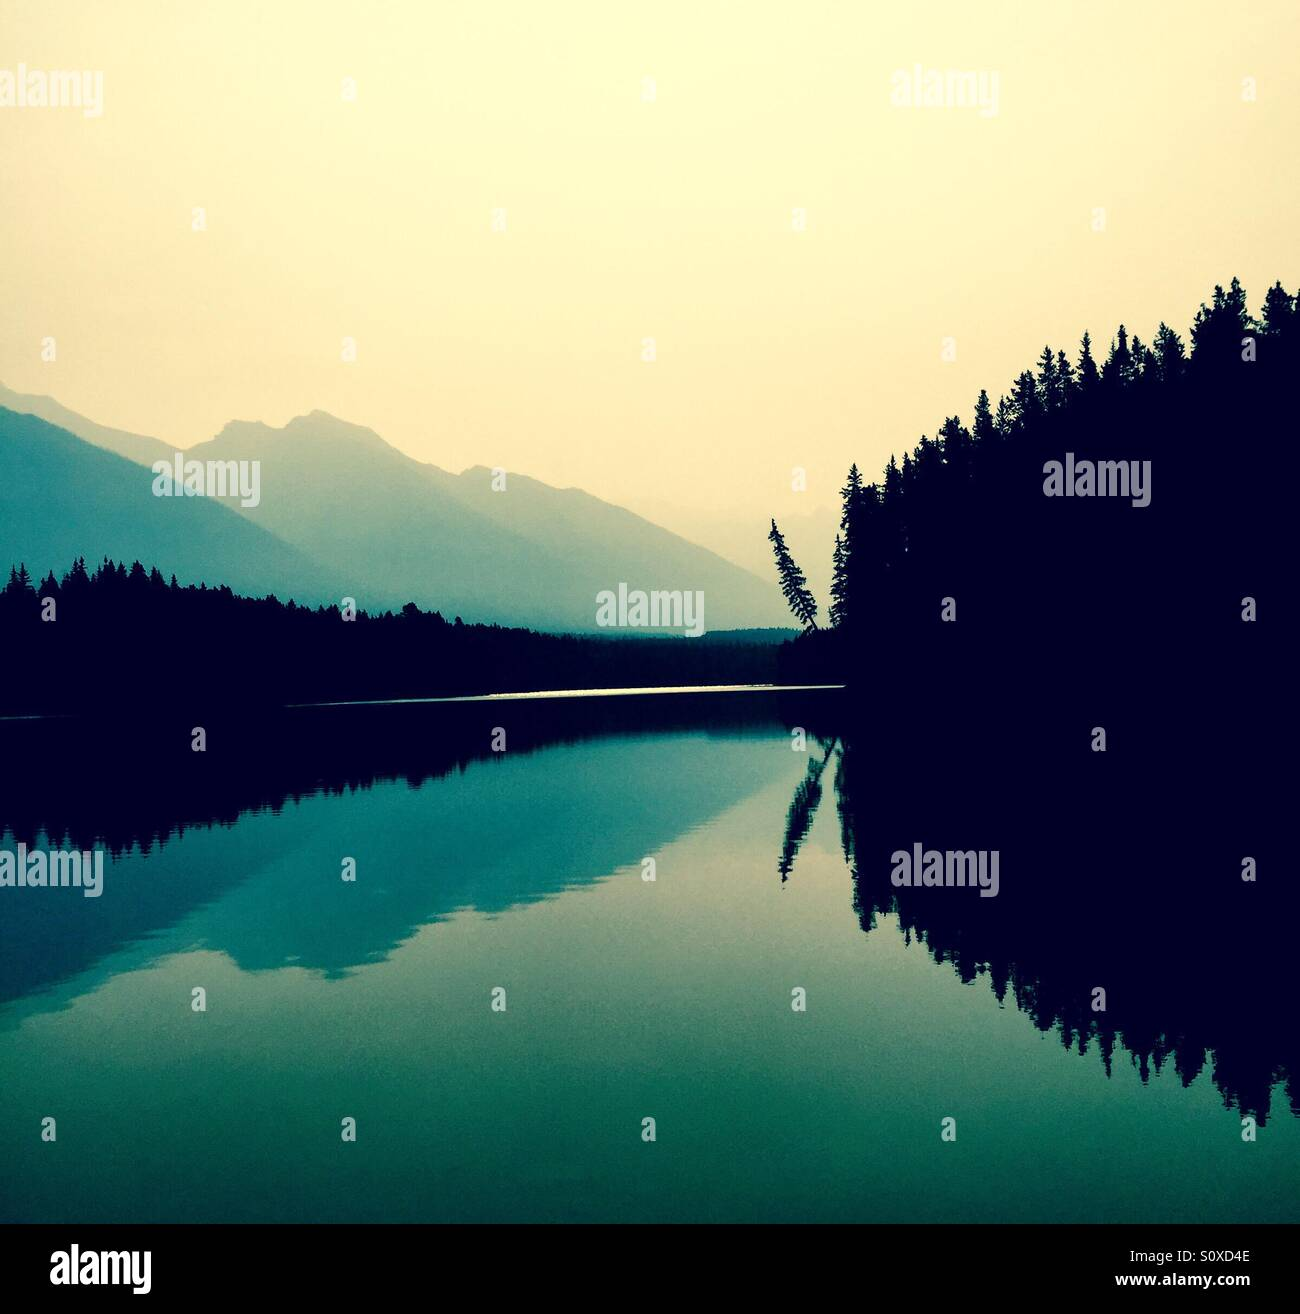 Réflexions sur un lac Photo Stock